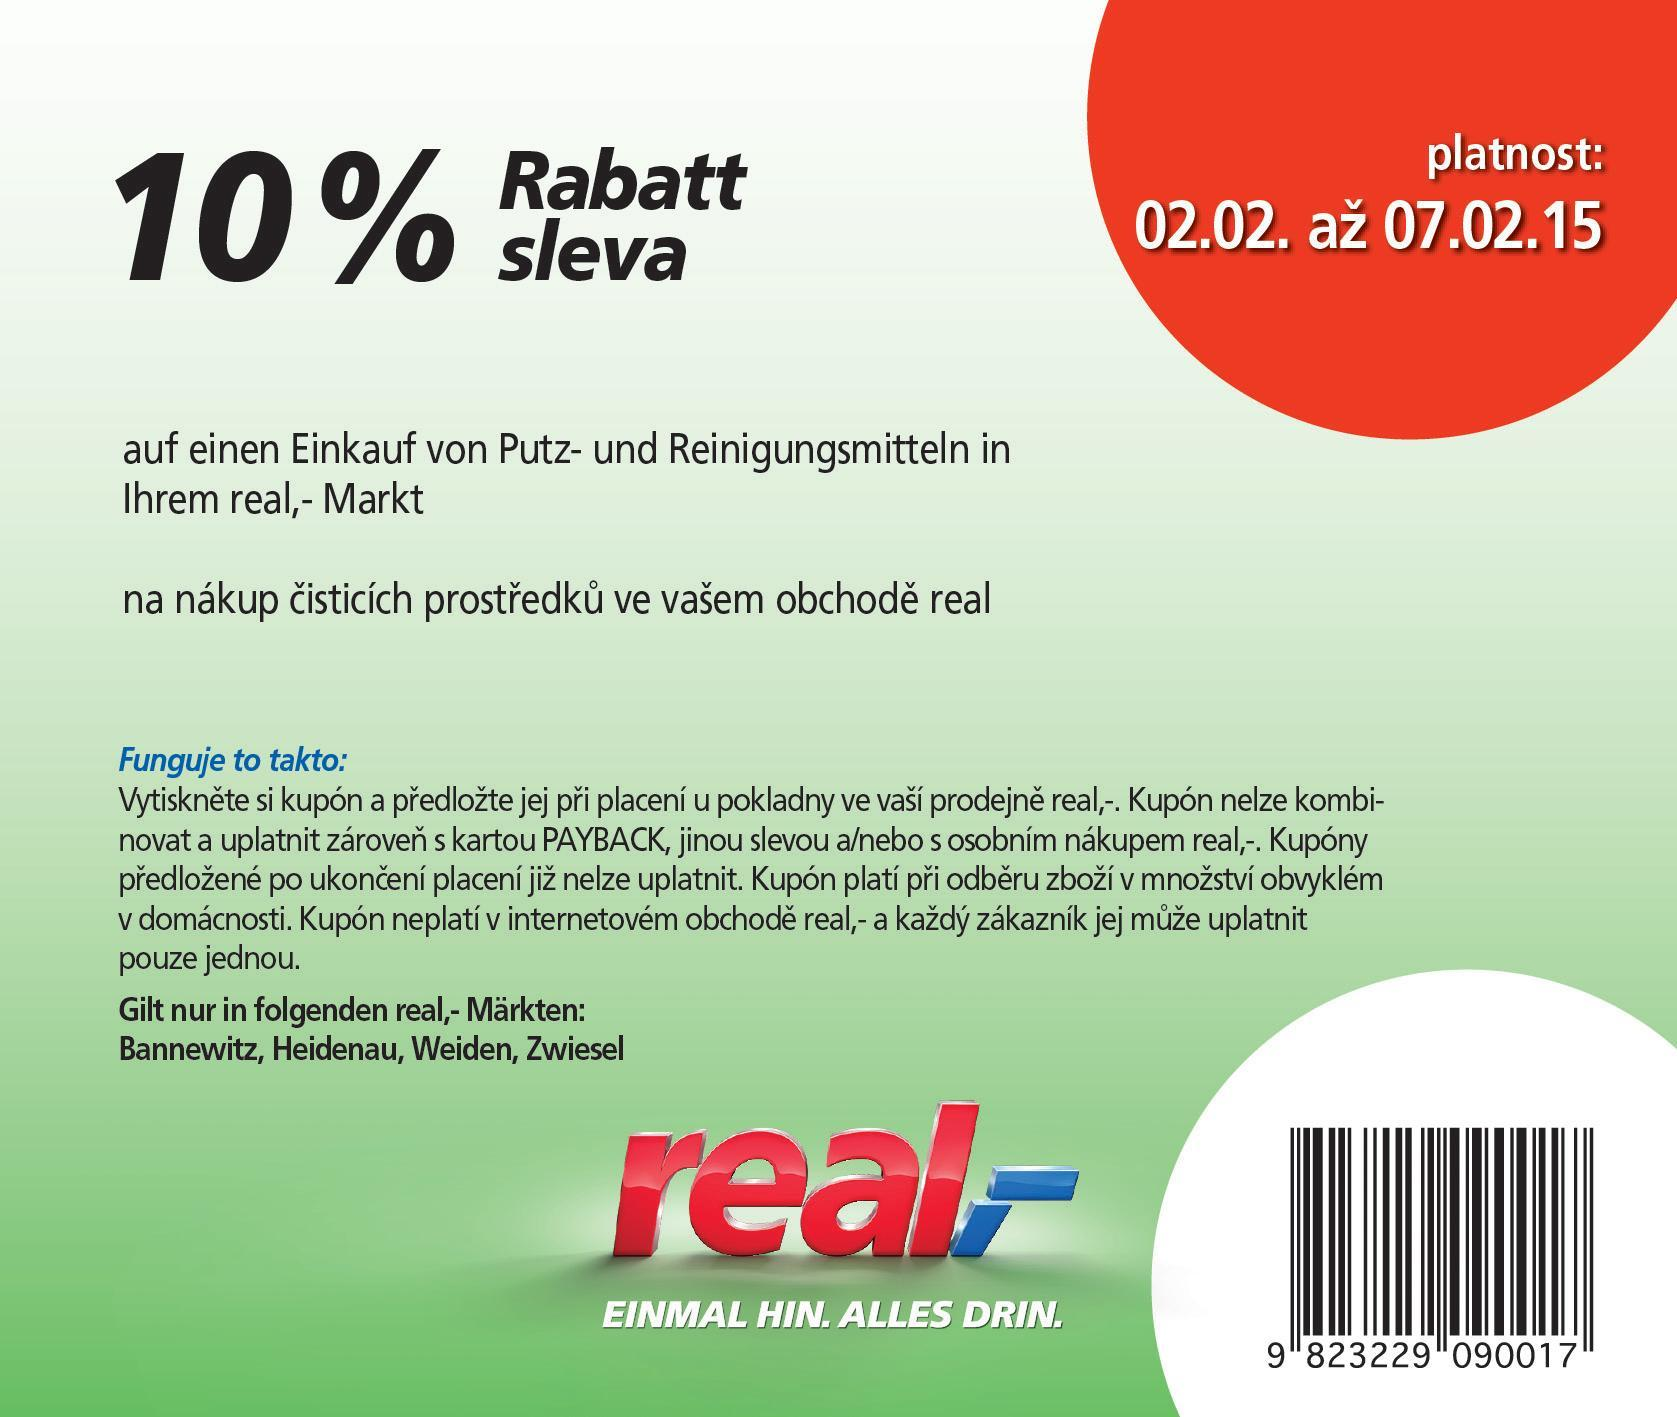 coupons_feb_2015_cz-pcje5v.jpg